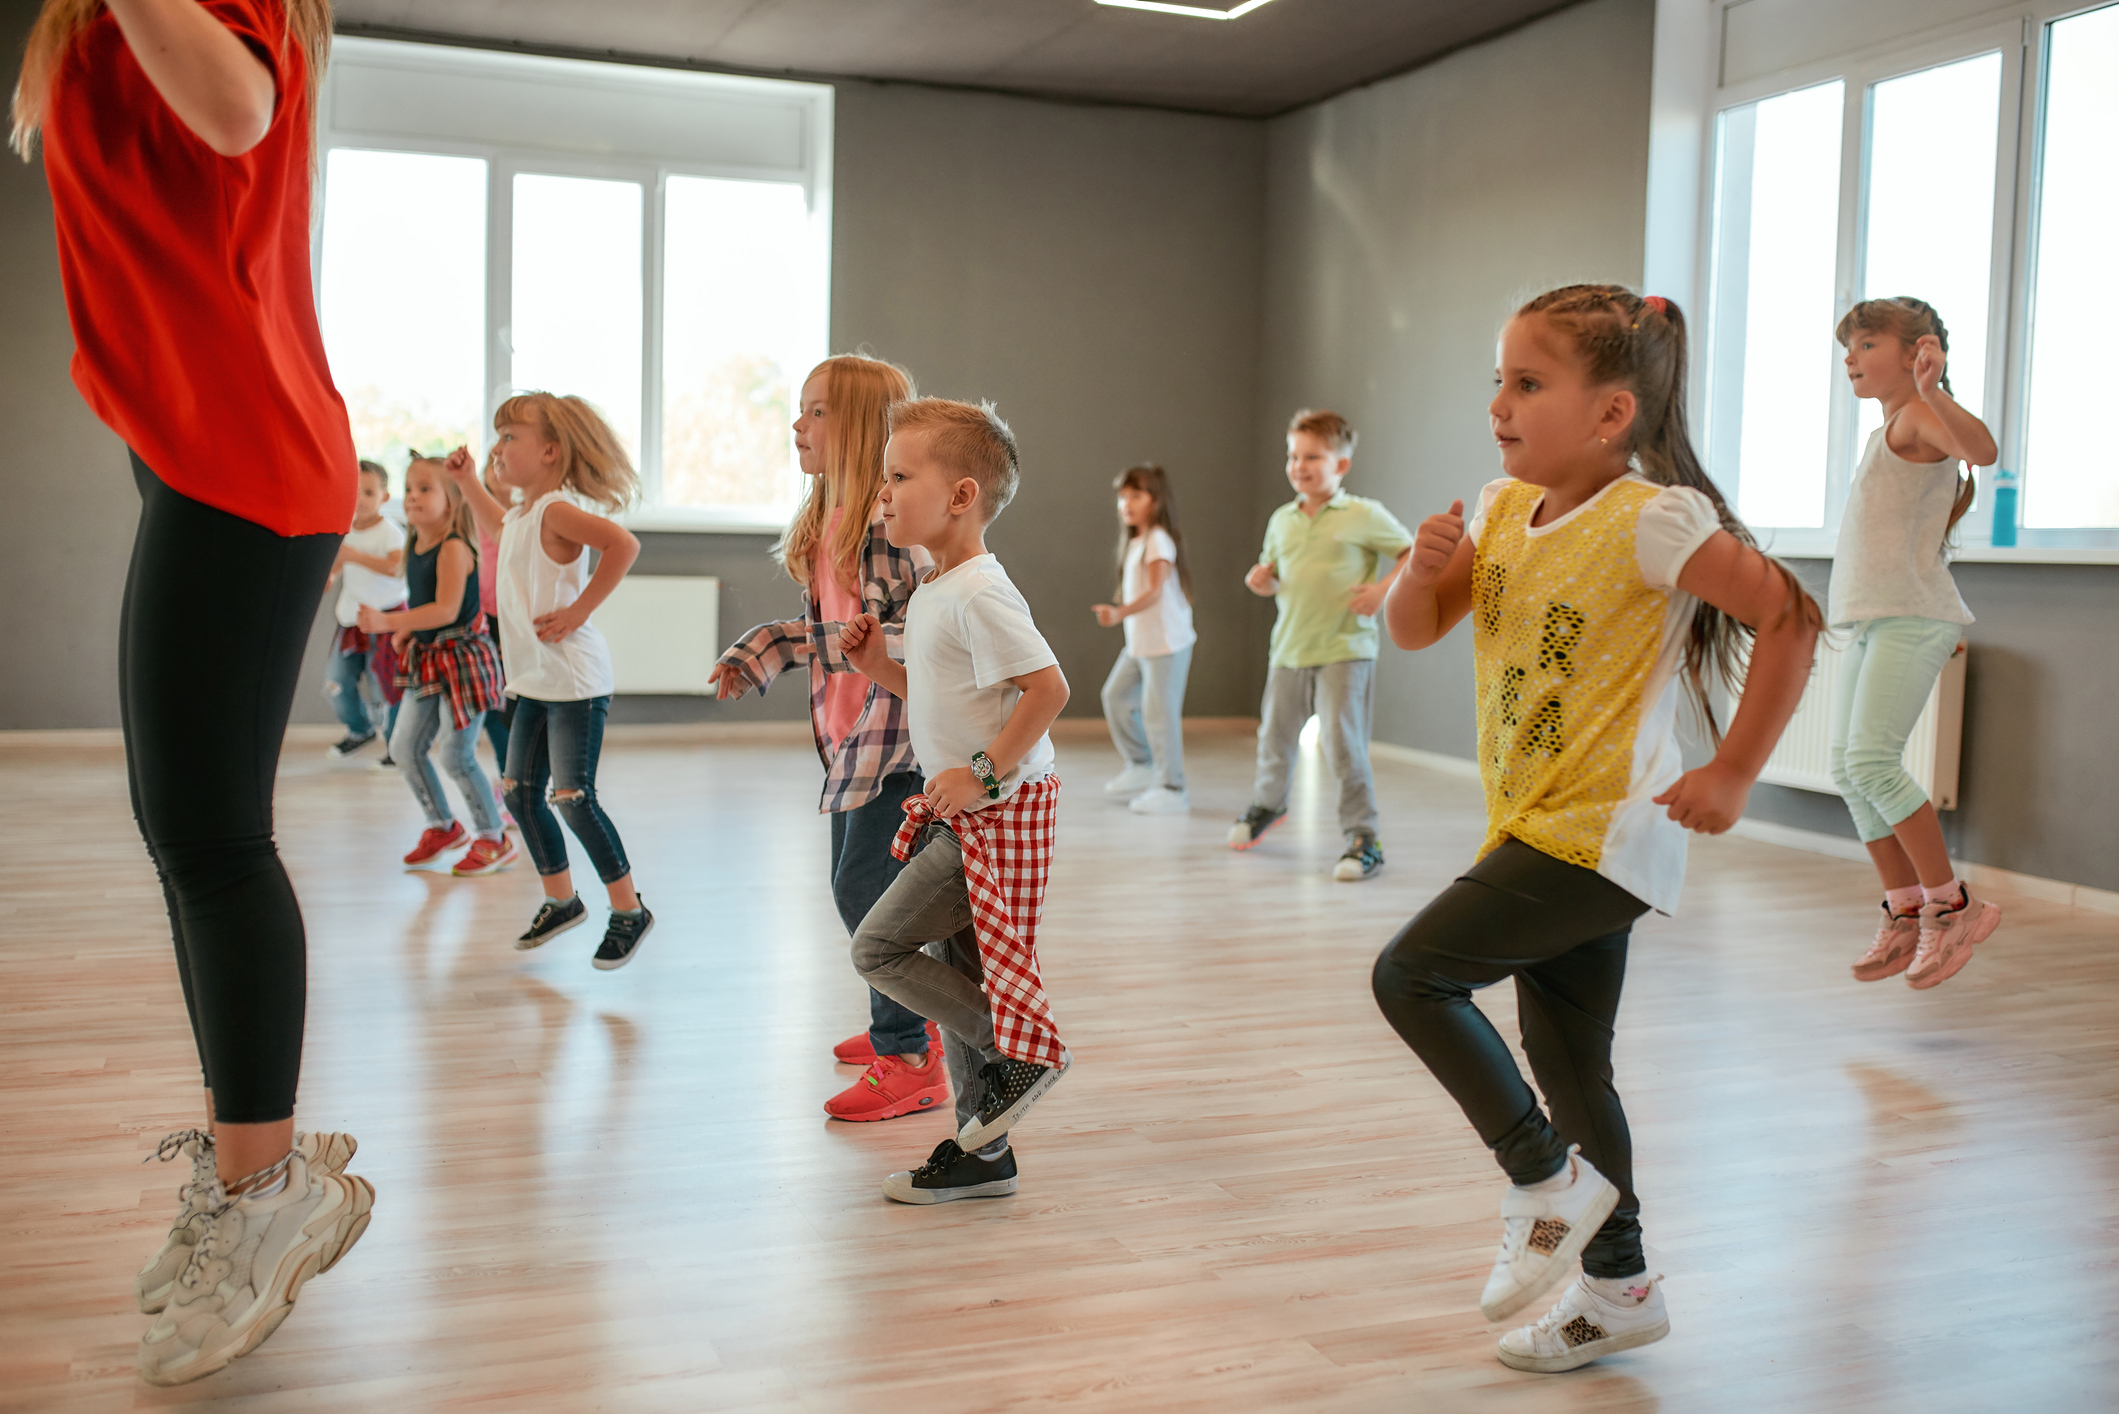 Group of little boys and girls dancing while having choreography class in the dance studio. Female dance teacher and children dancing. Contemp dance. Hip hop. Kids and sport. Full length